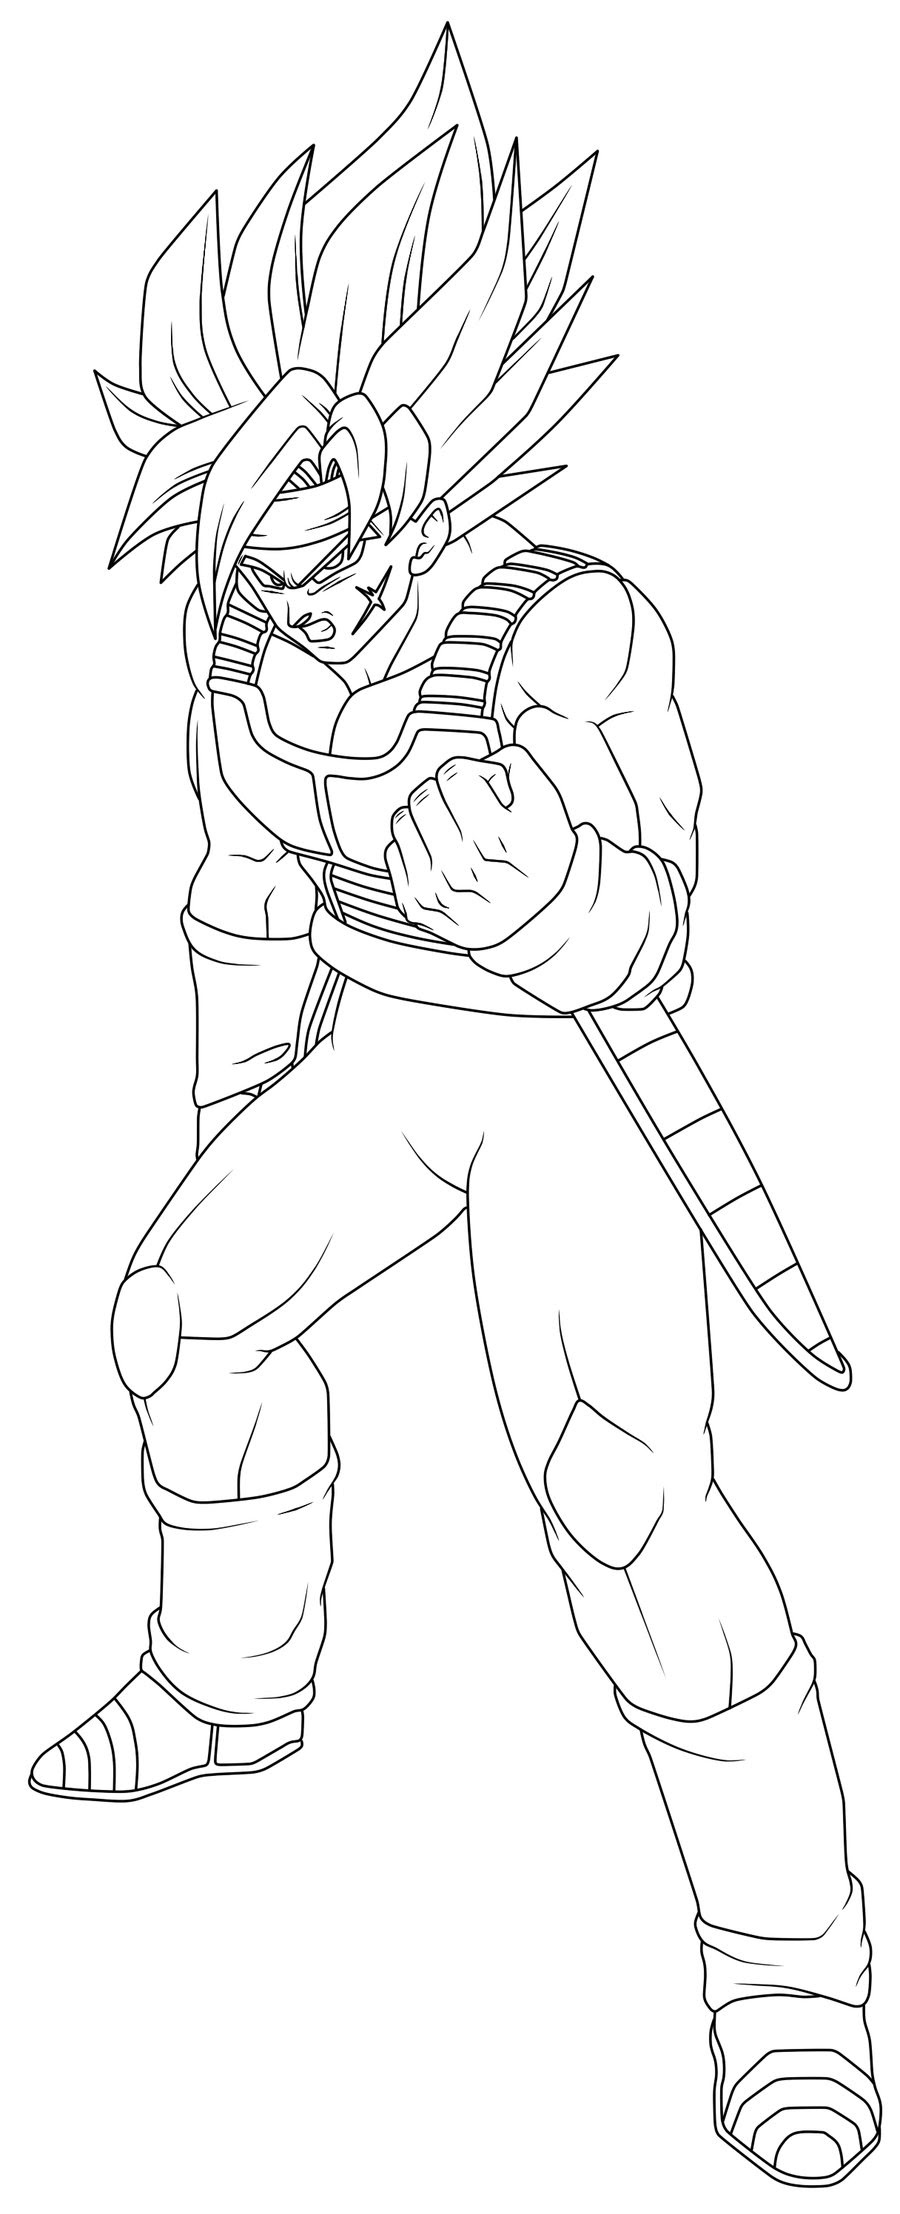 Dragon Ball Z Coloring Pages Bardock At Getdrawingscom Free For